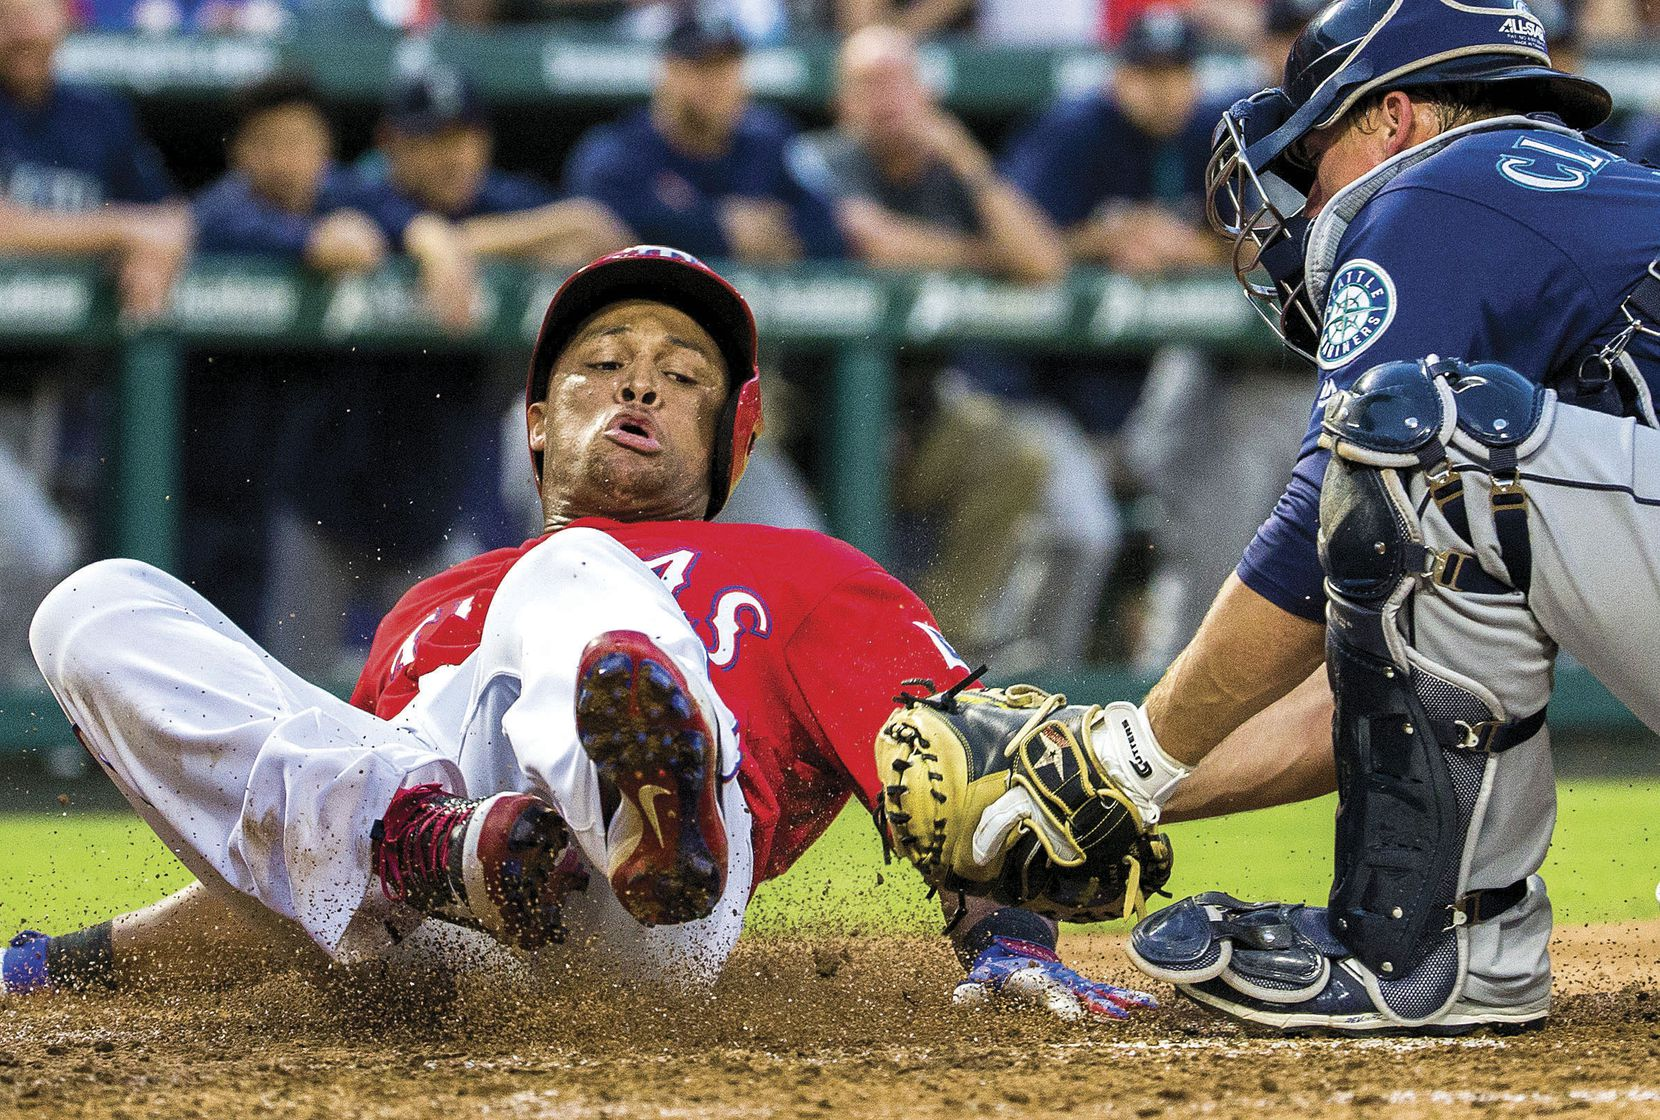 Texas Rangers third baseman Adrian Beltre was tagged out at home by Seattle Mariners catcher Steve Clevenger during the third inning of a game on June 3 at Globe Life Park in Arlington.